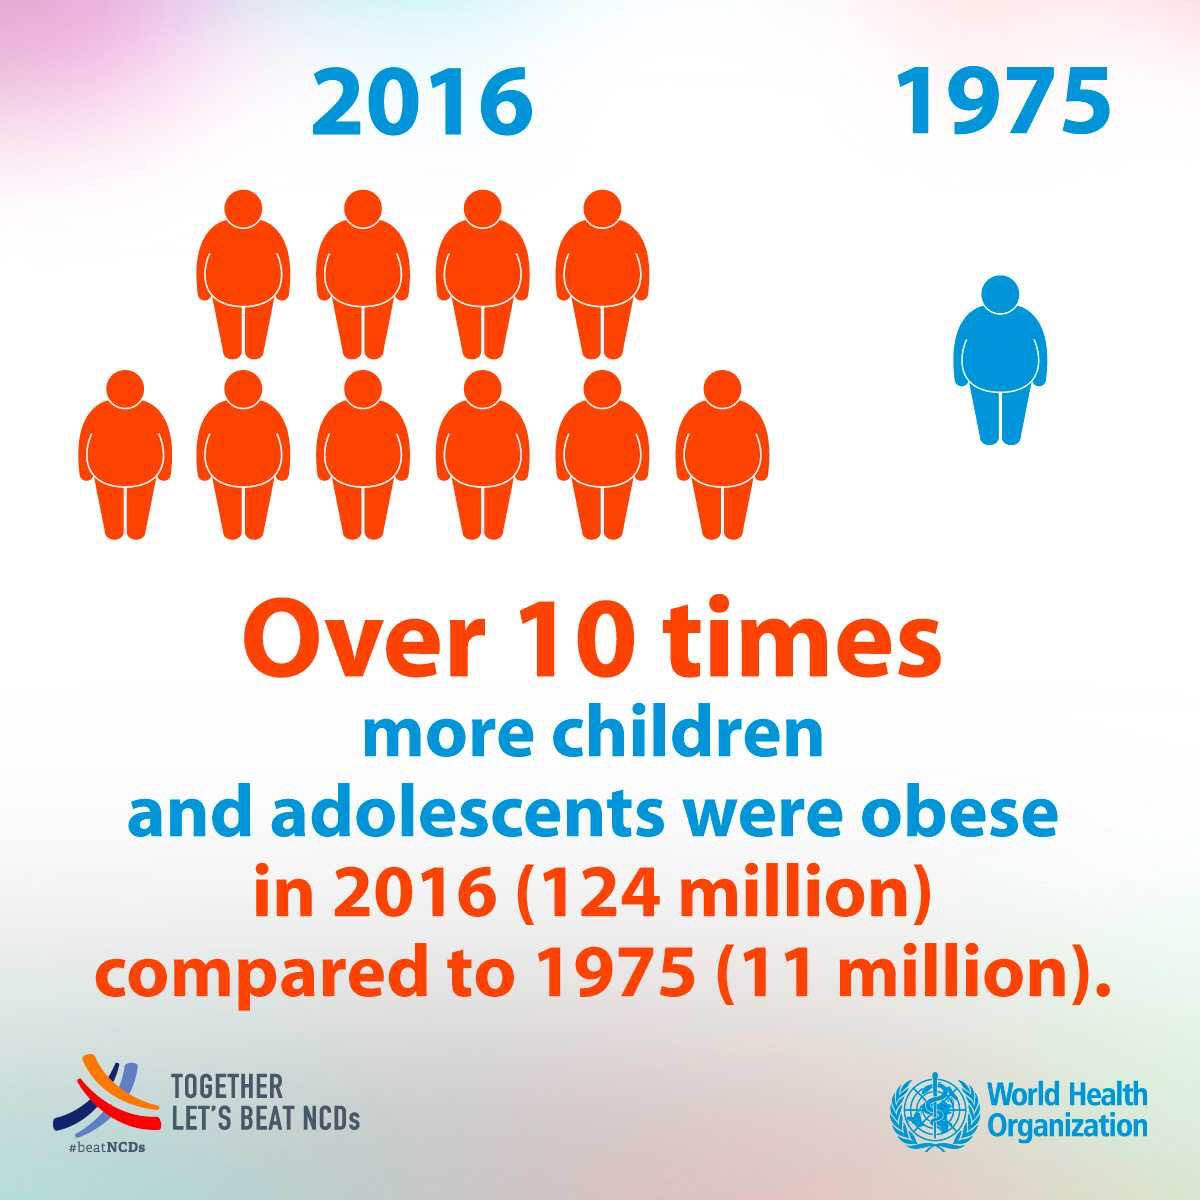 We have seen a decrease in stunting but all other forms of malnutrition are increasing, incl. childhood obesit #WorldFoodDayy